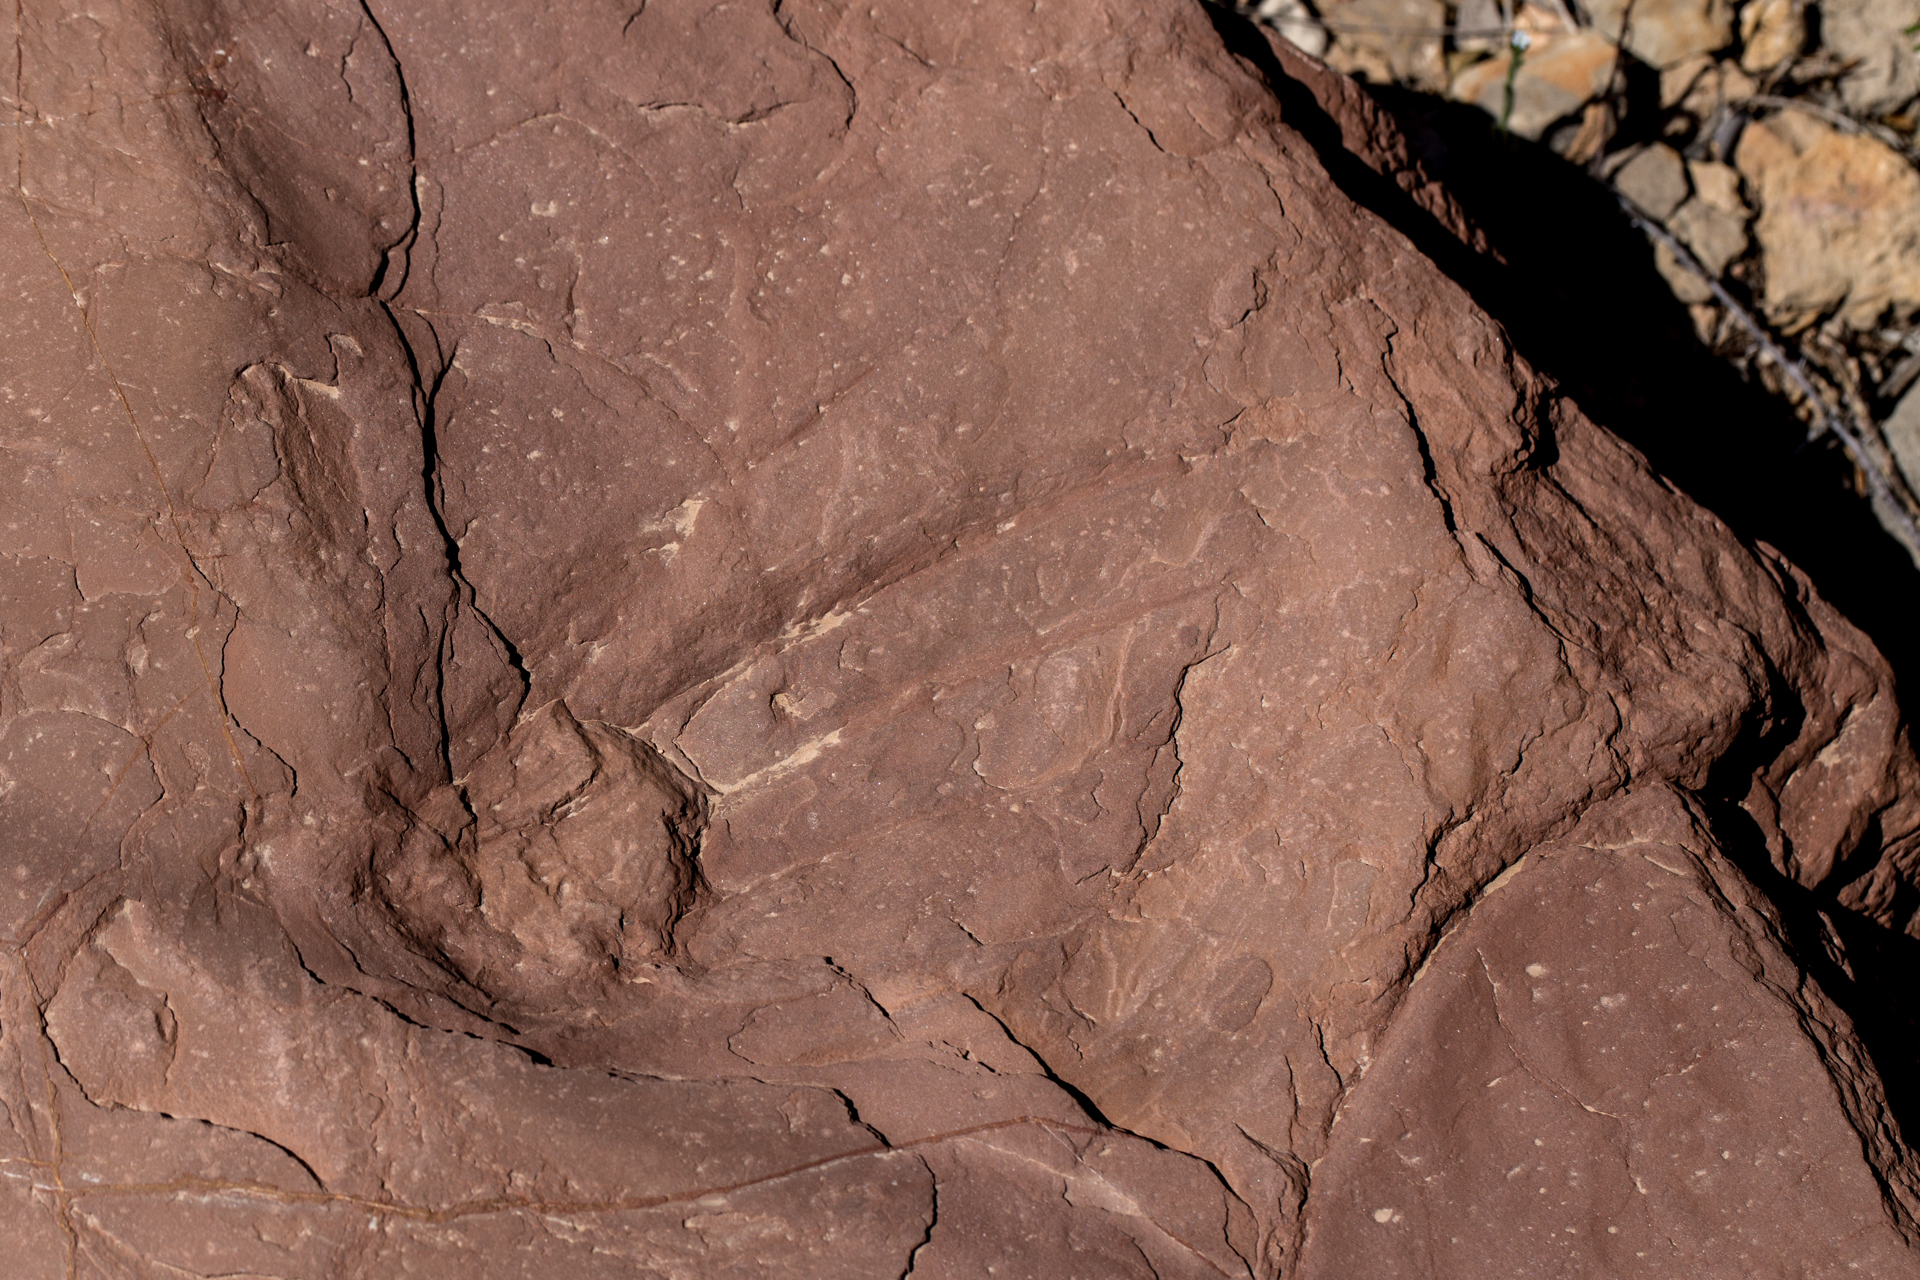 Tracks of a Dimetrodon are deeply impressed into red siltstone.